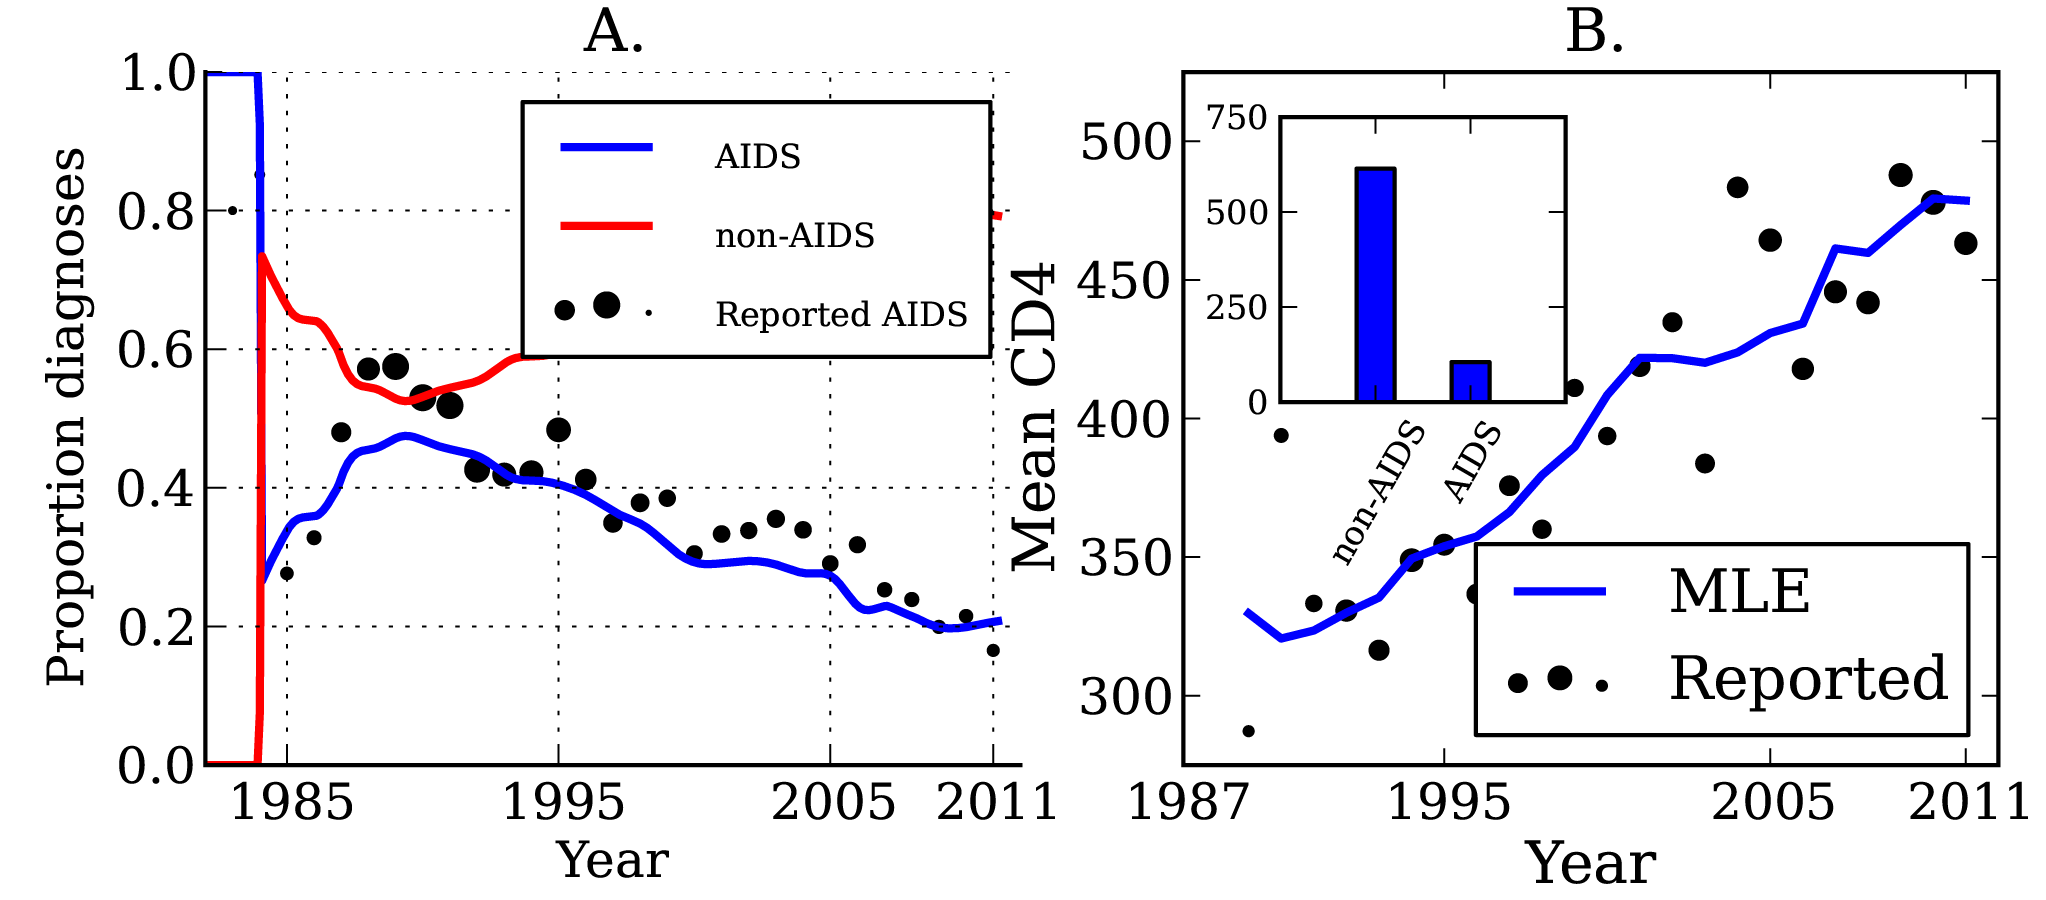 HIV diagnoses and CD4 cell count through time.